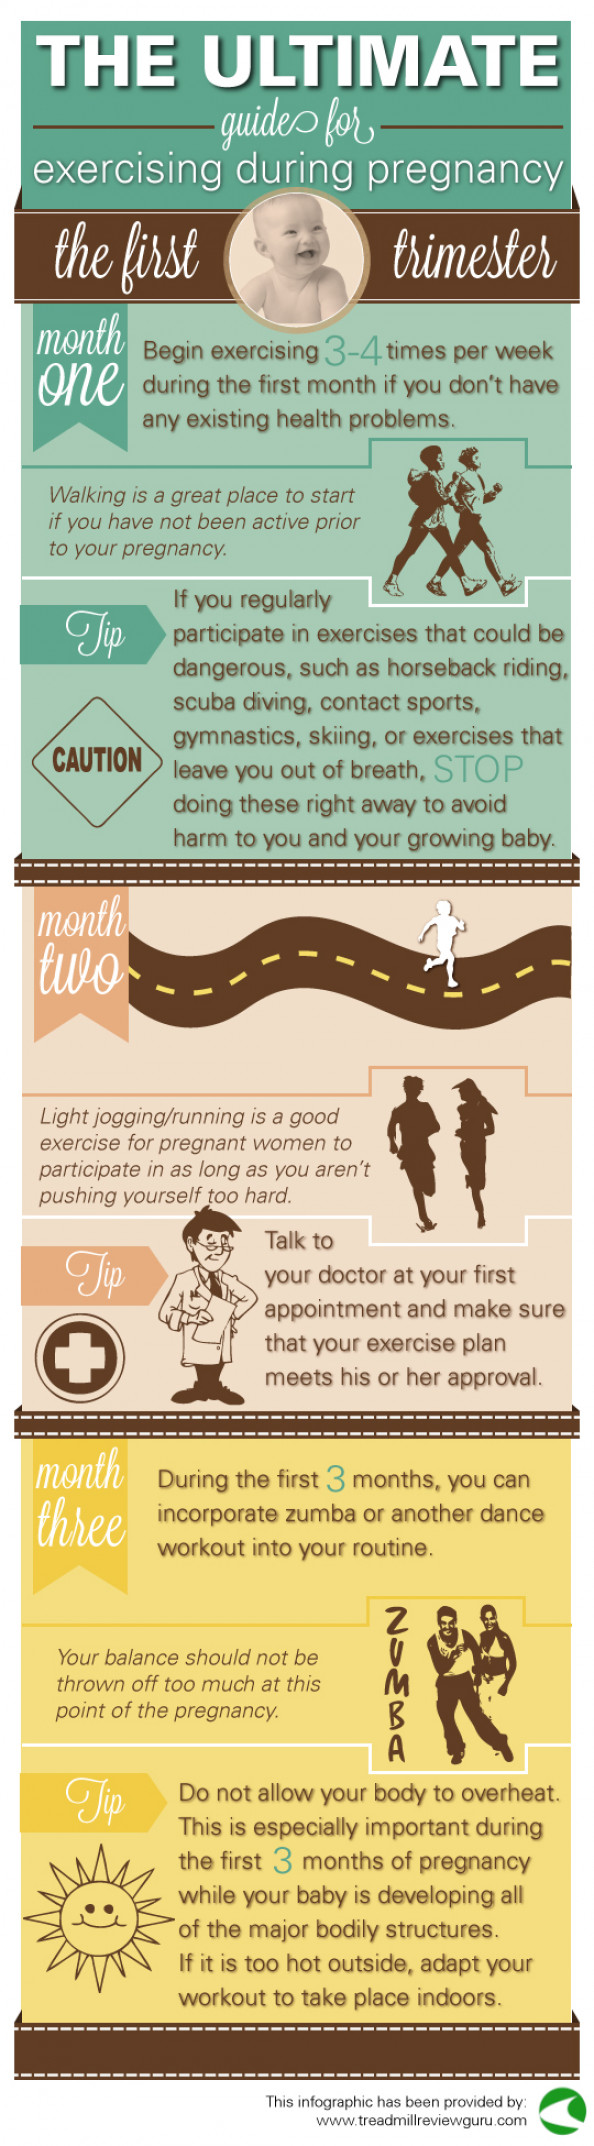 The Ultimate Guide for Exercising During Pregnancy (1st Trimester) Infographic